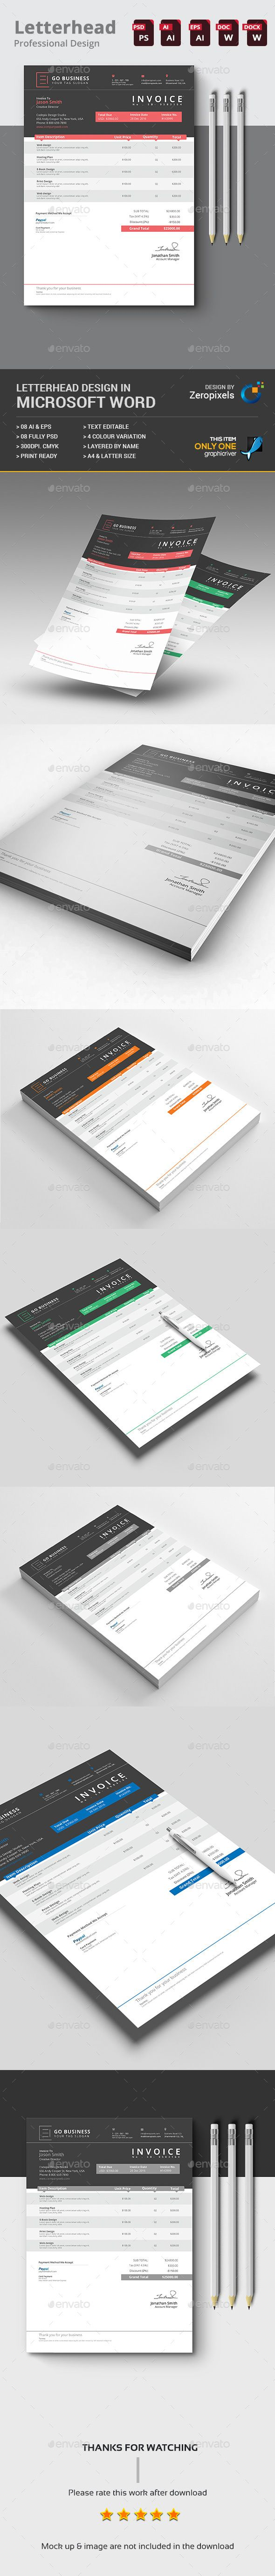 Invoice Template PSD Vector EPS AI MS